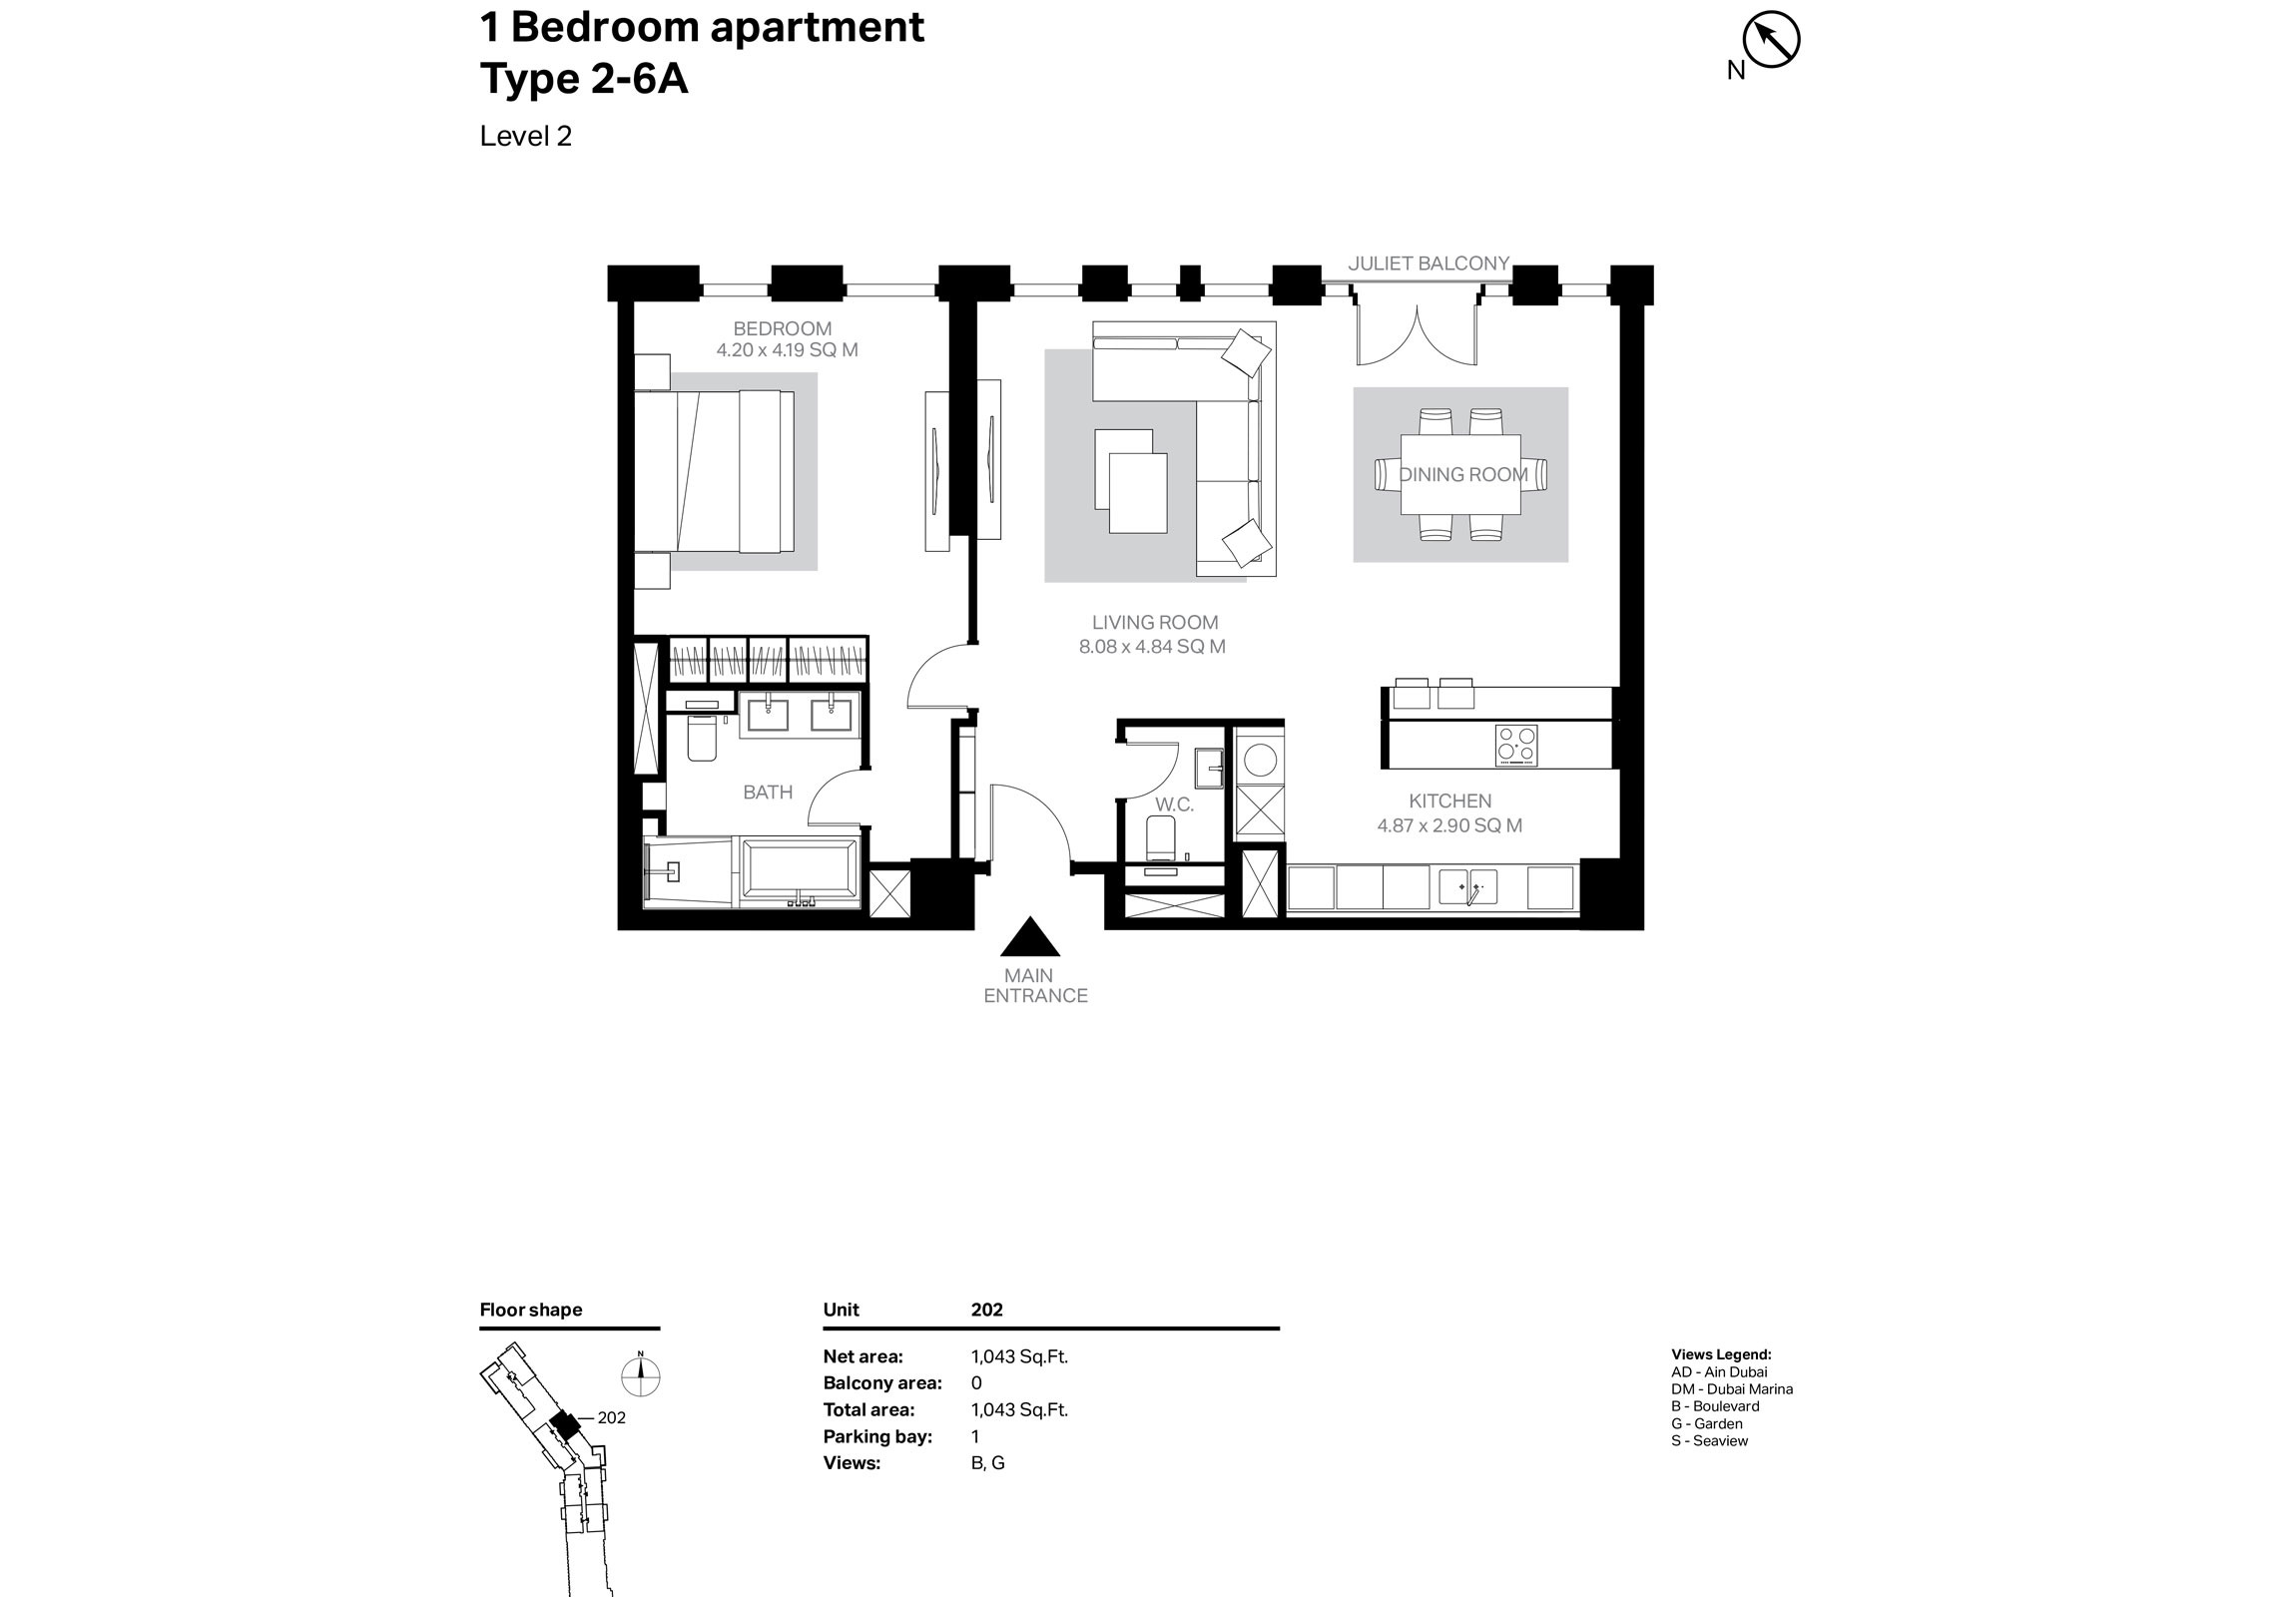 Building 2 - 1 Bedroom Type 2-6A Level 2 Size 1043    sq. ft.